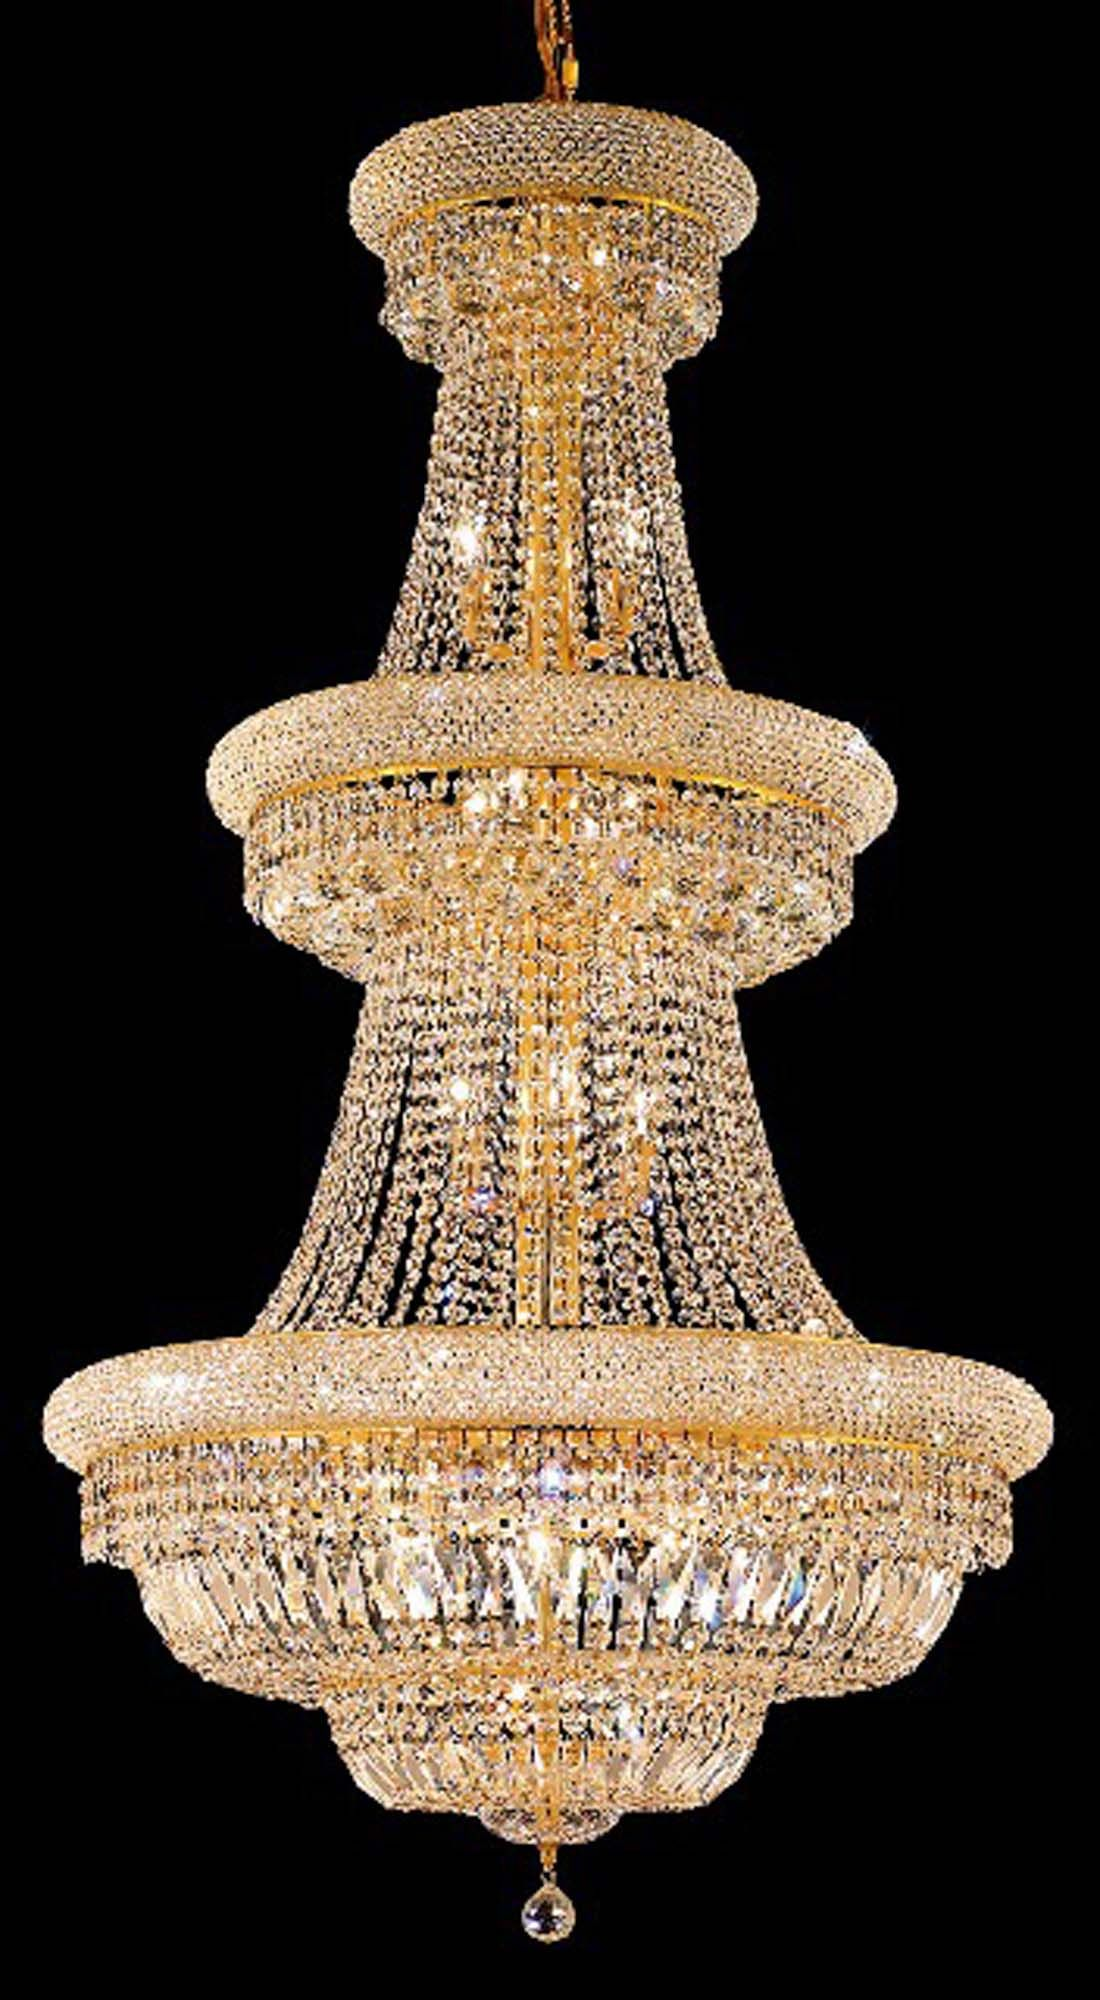 gorgeous chandelier OK I KNOW not the usual human bling but